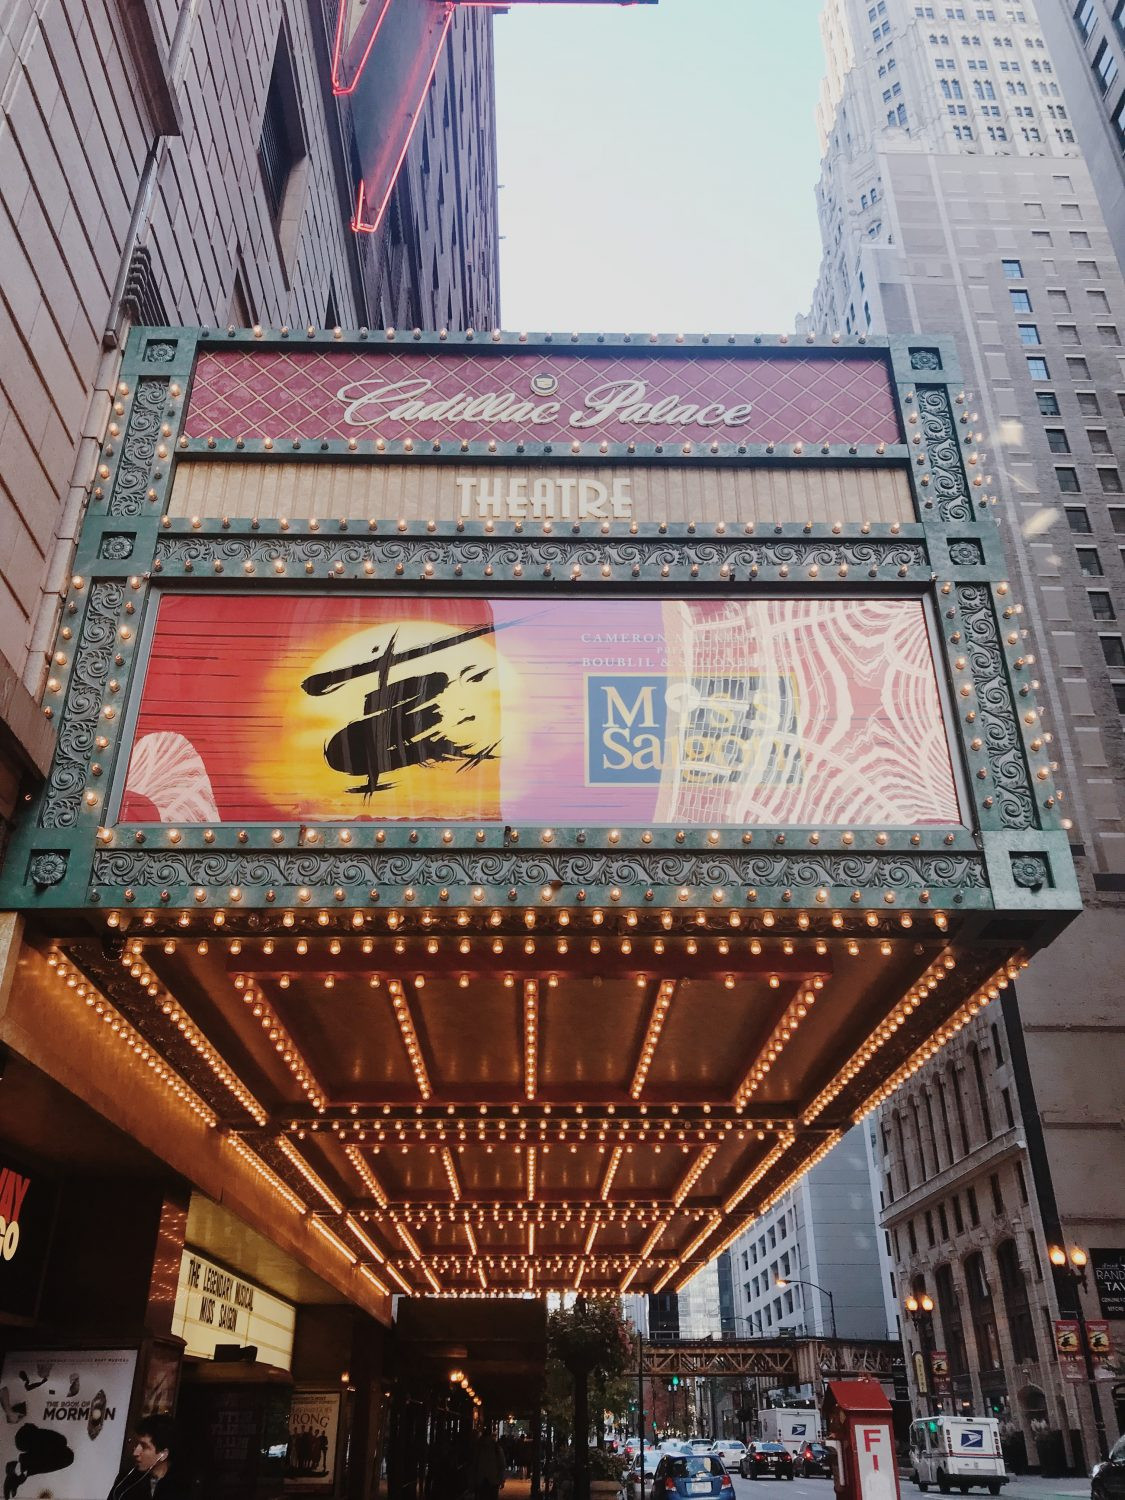 Broadway in Chicago Miss Saigon